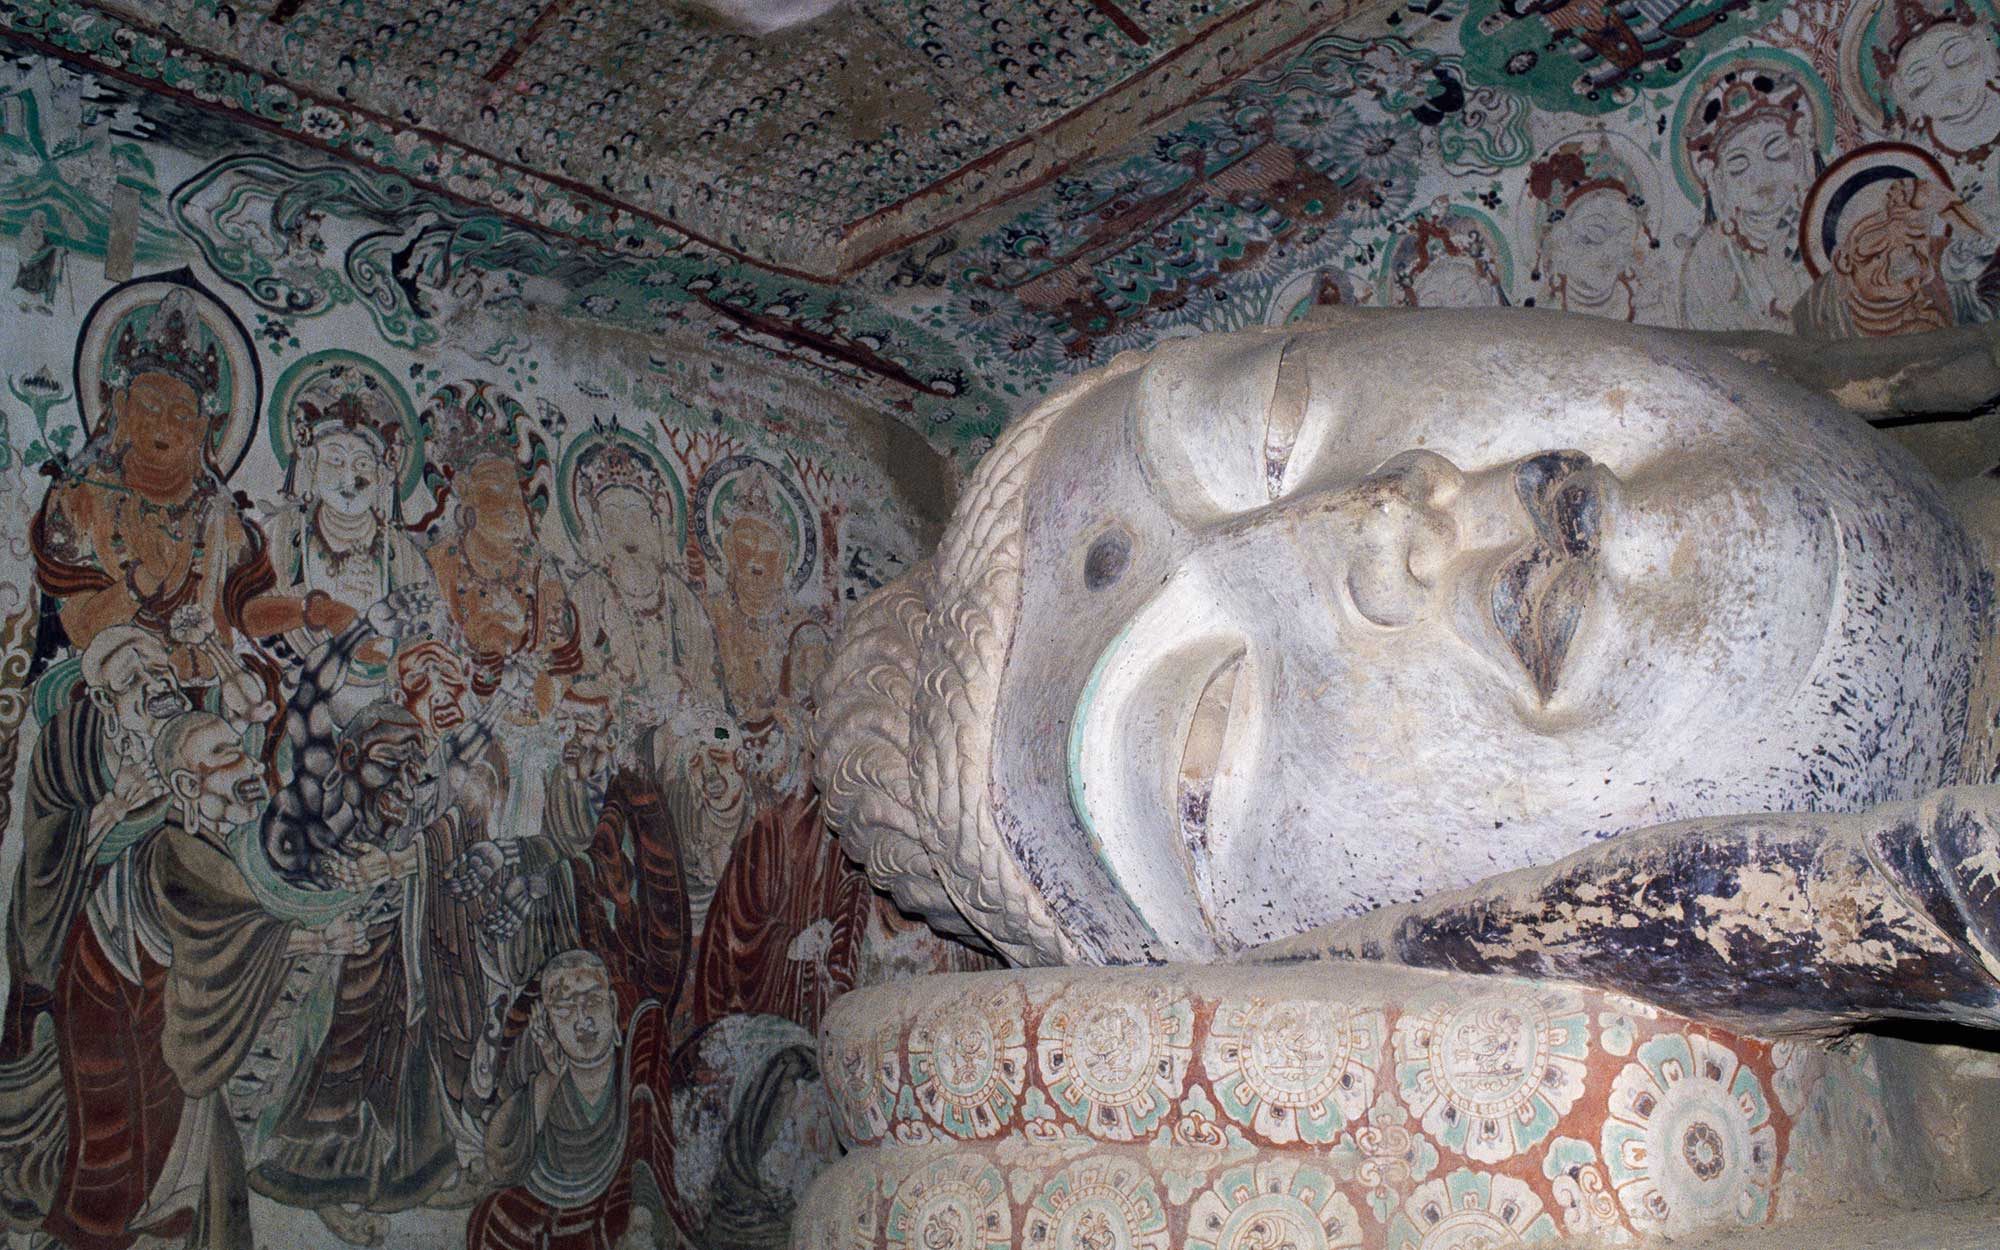 The World's Coolest Caves: of the Thousand Buddhas (Mogao Grottos)